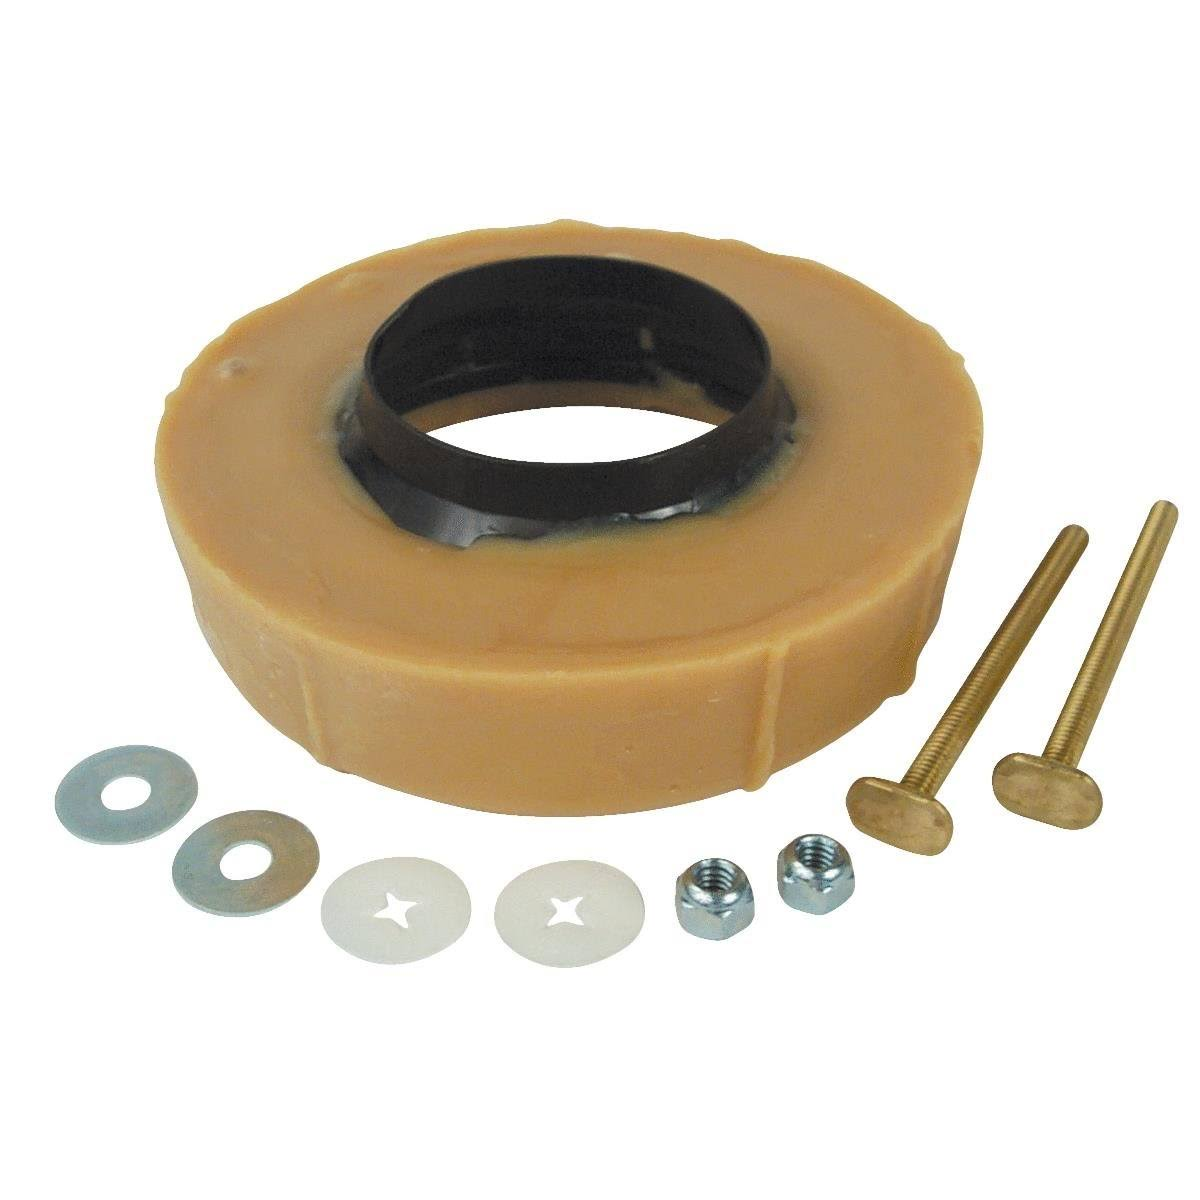 Do it Best No. 35B Extra Thick Wax Ring Extender Kit